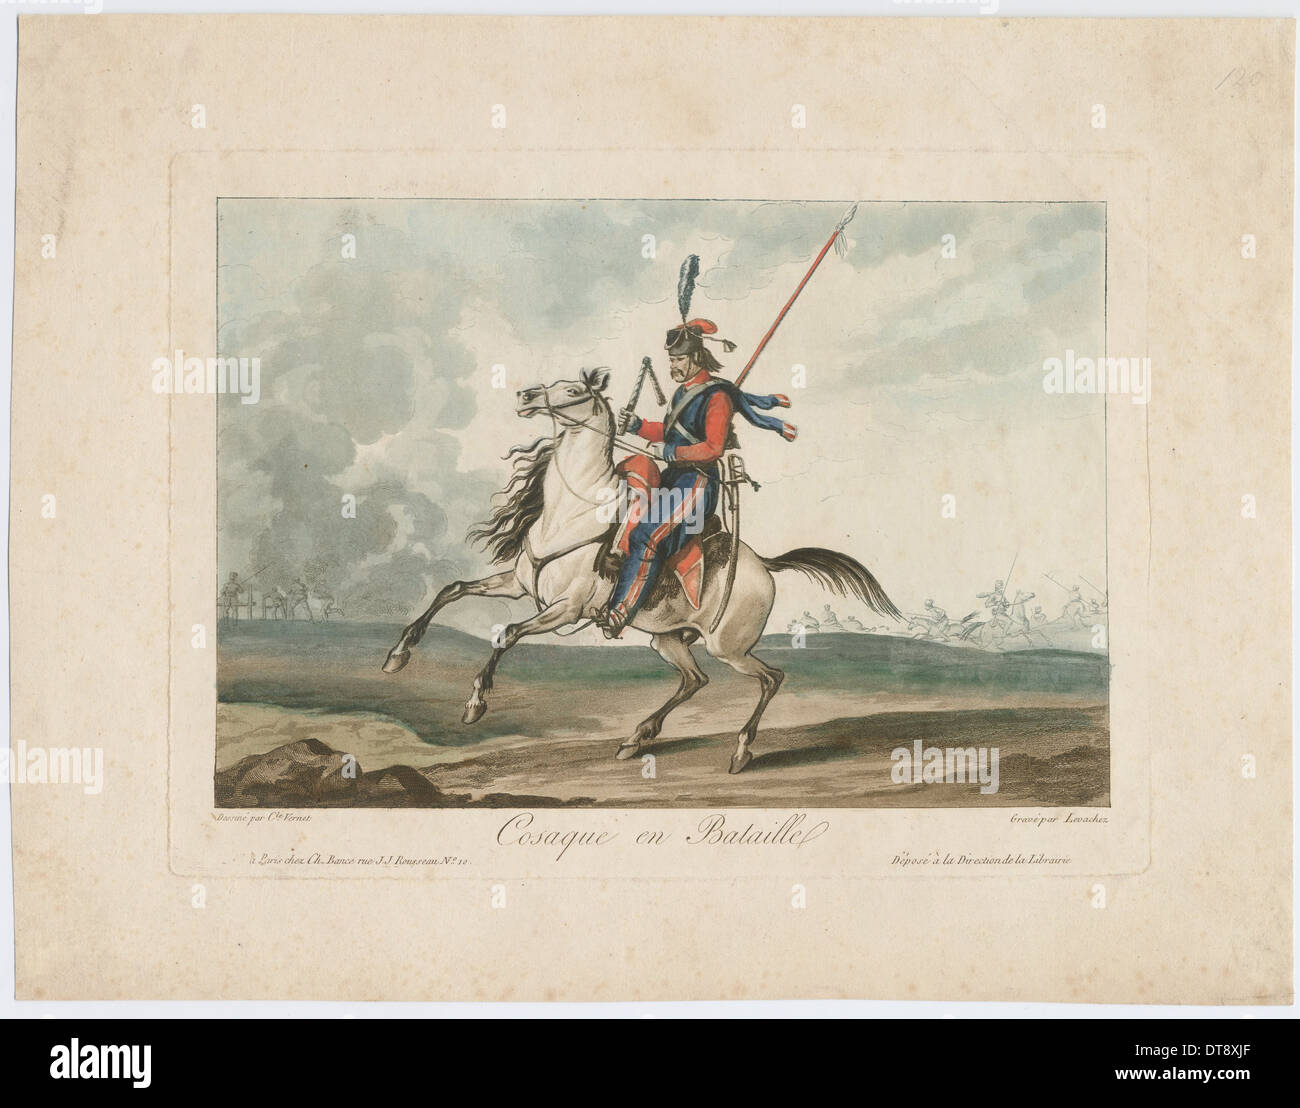 Cossack at the battle, 1815. Artist: Vernet, Carle (1758-1836) - Stock Image